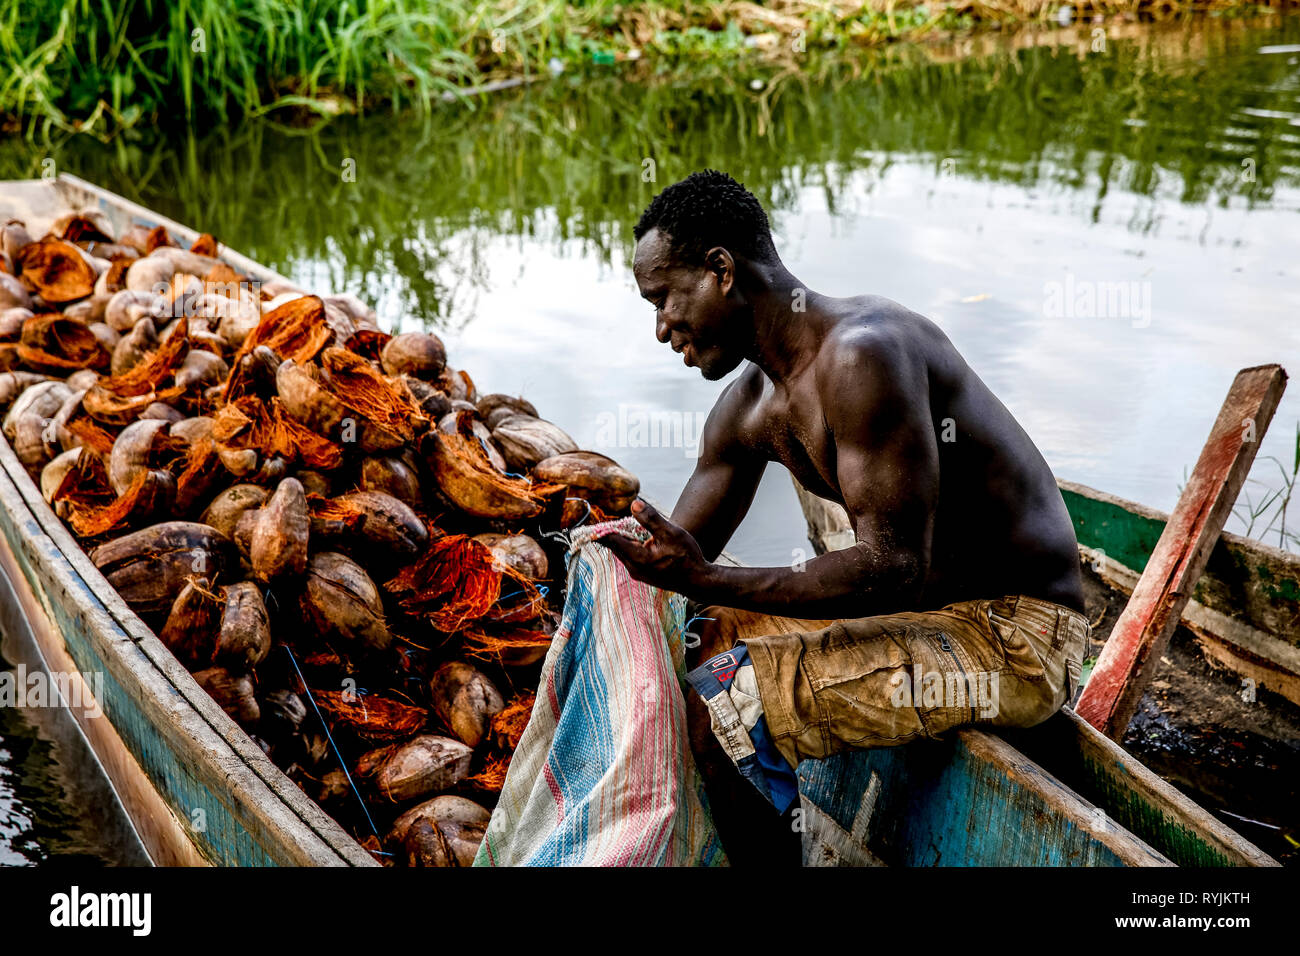 Man filling a bag with coconut husks in a canoe in Grand Bassam, Ivory Coast. - Stock Image